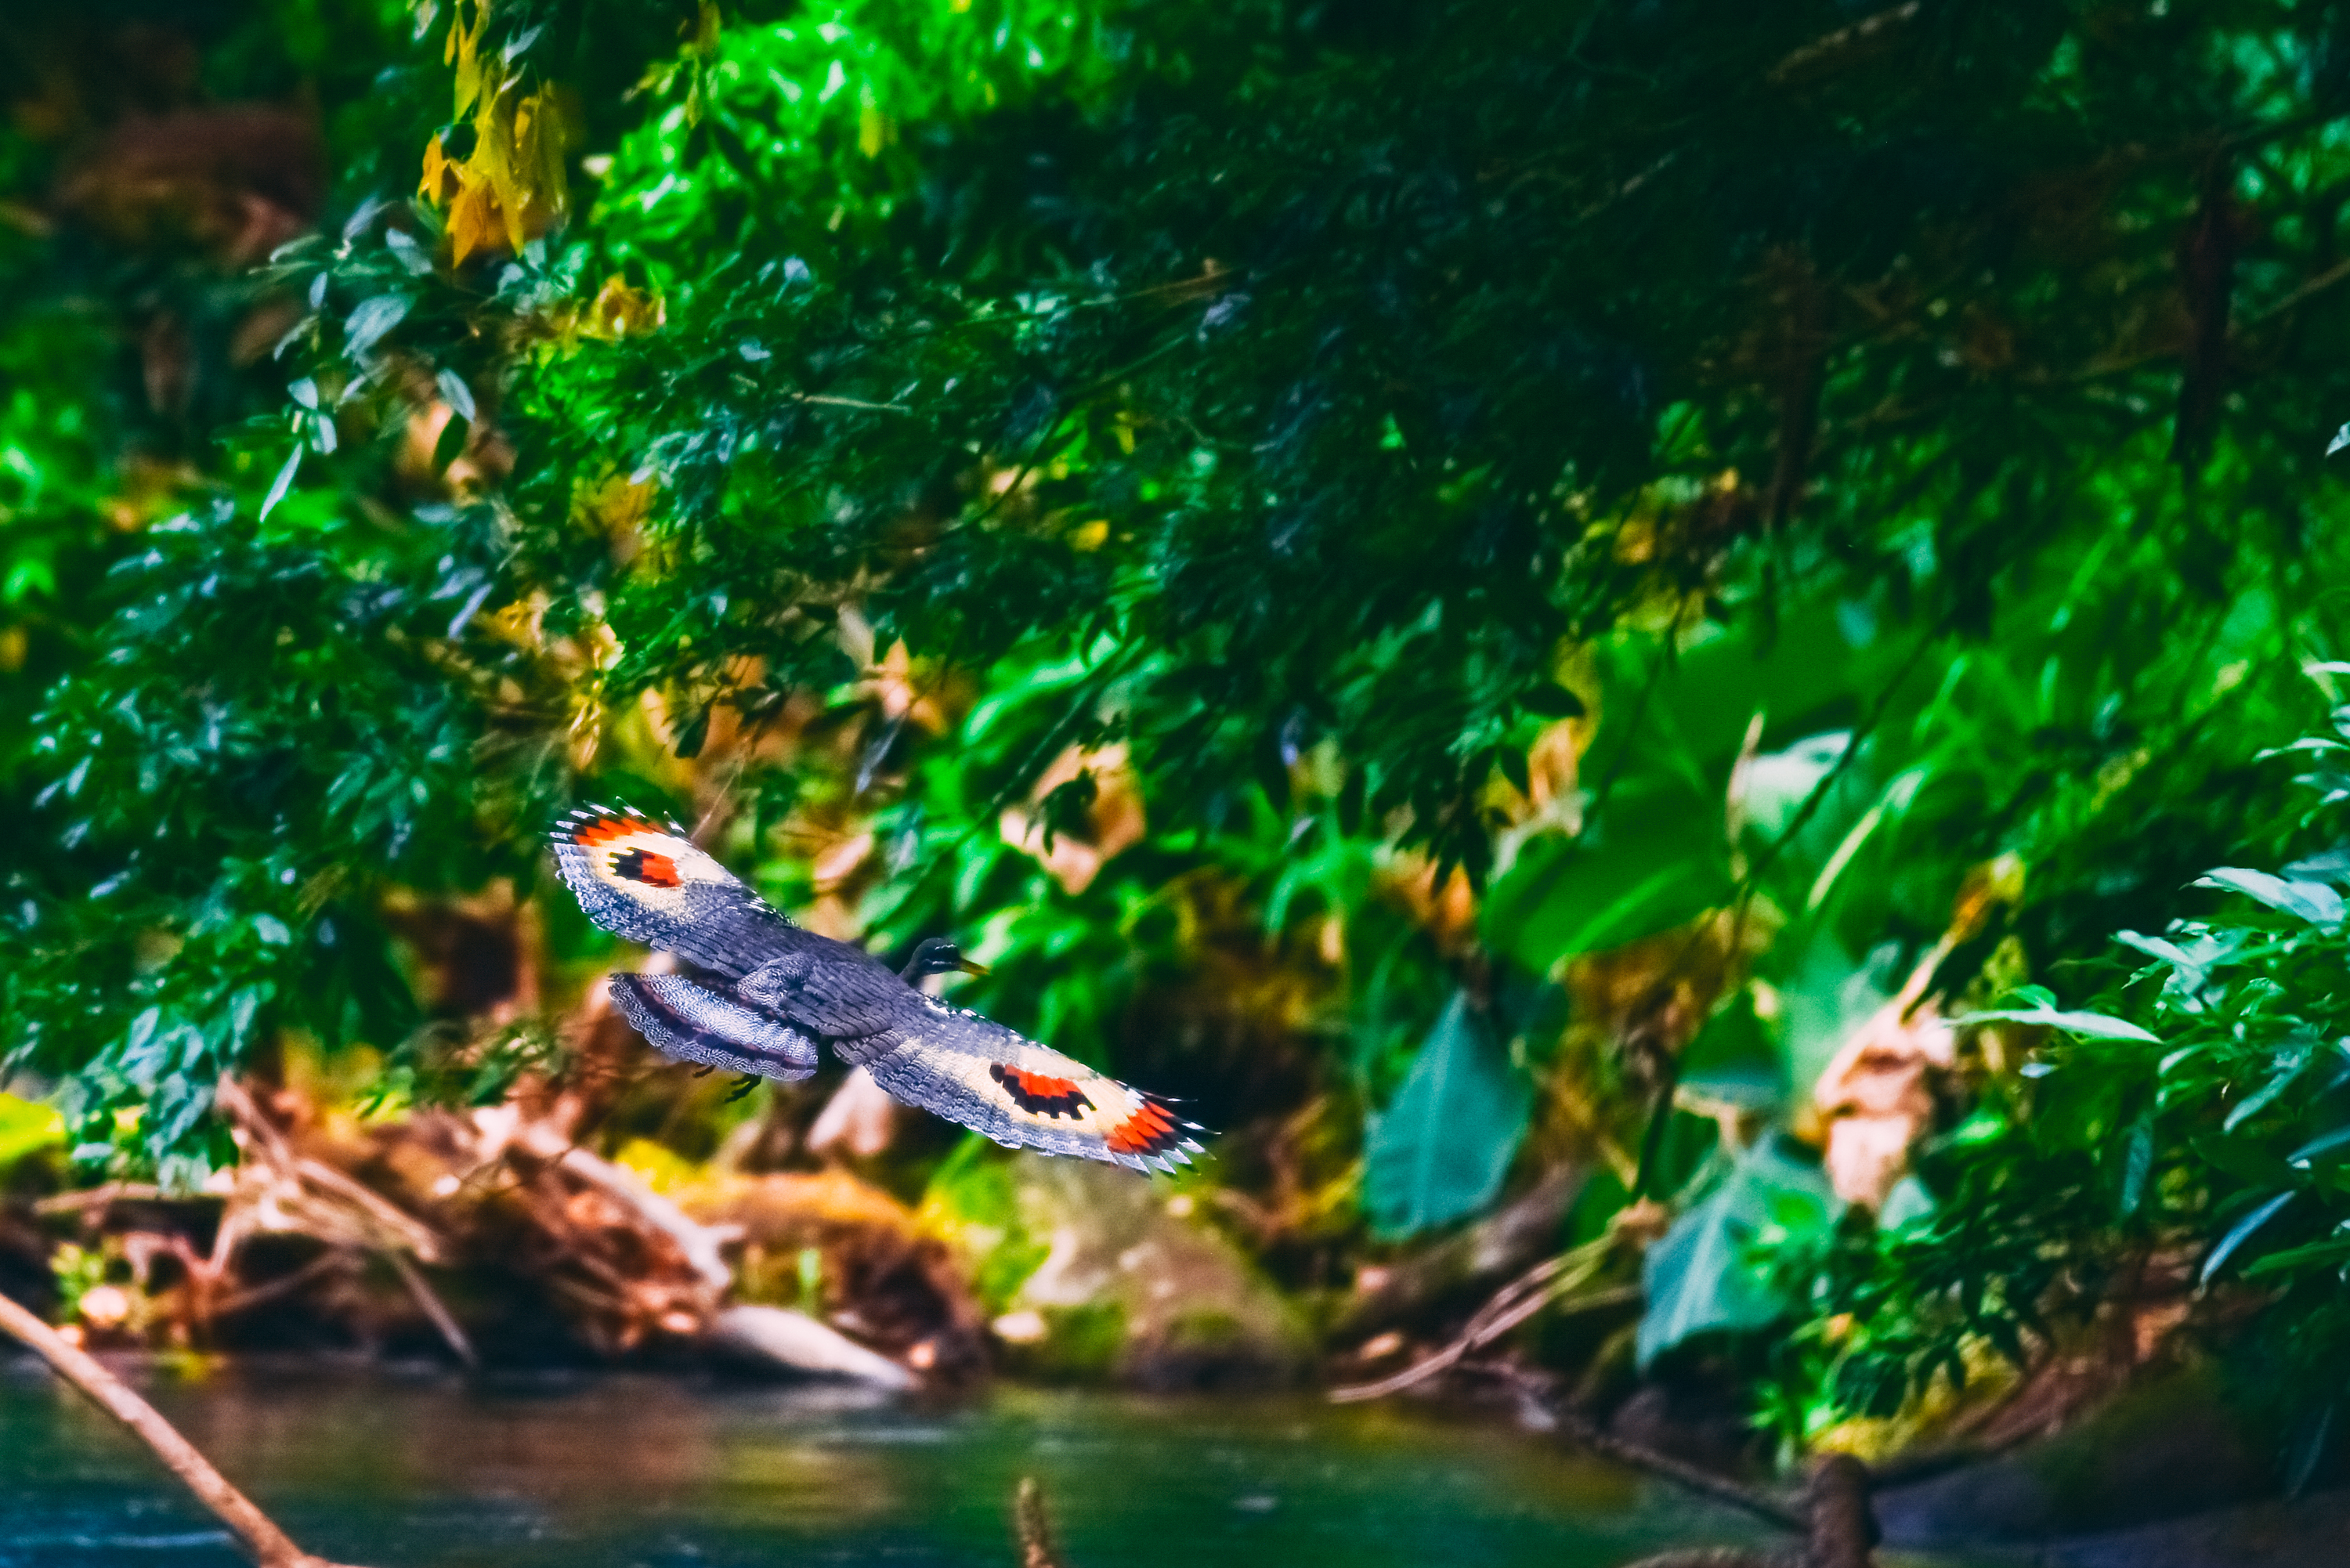 A great way to see birds in Costa Rica - whitewater and wildlife Jungle Safari Float with Desafio.